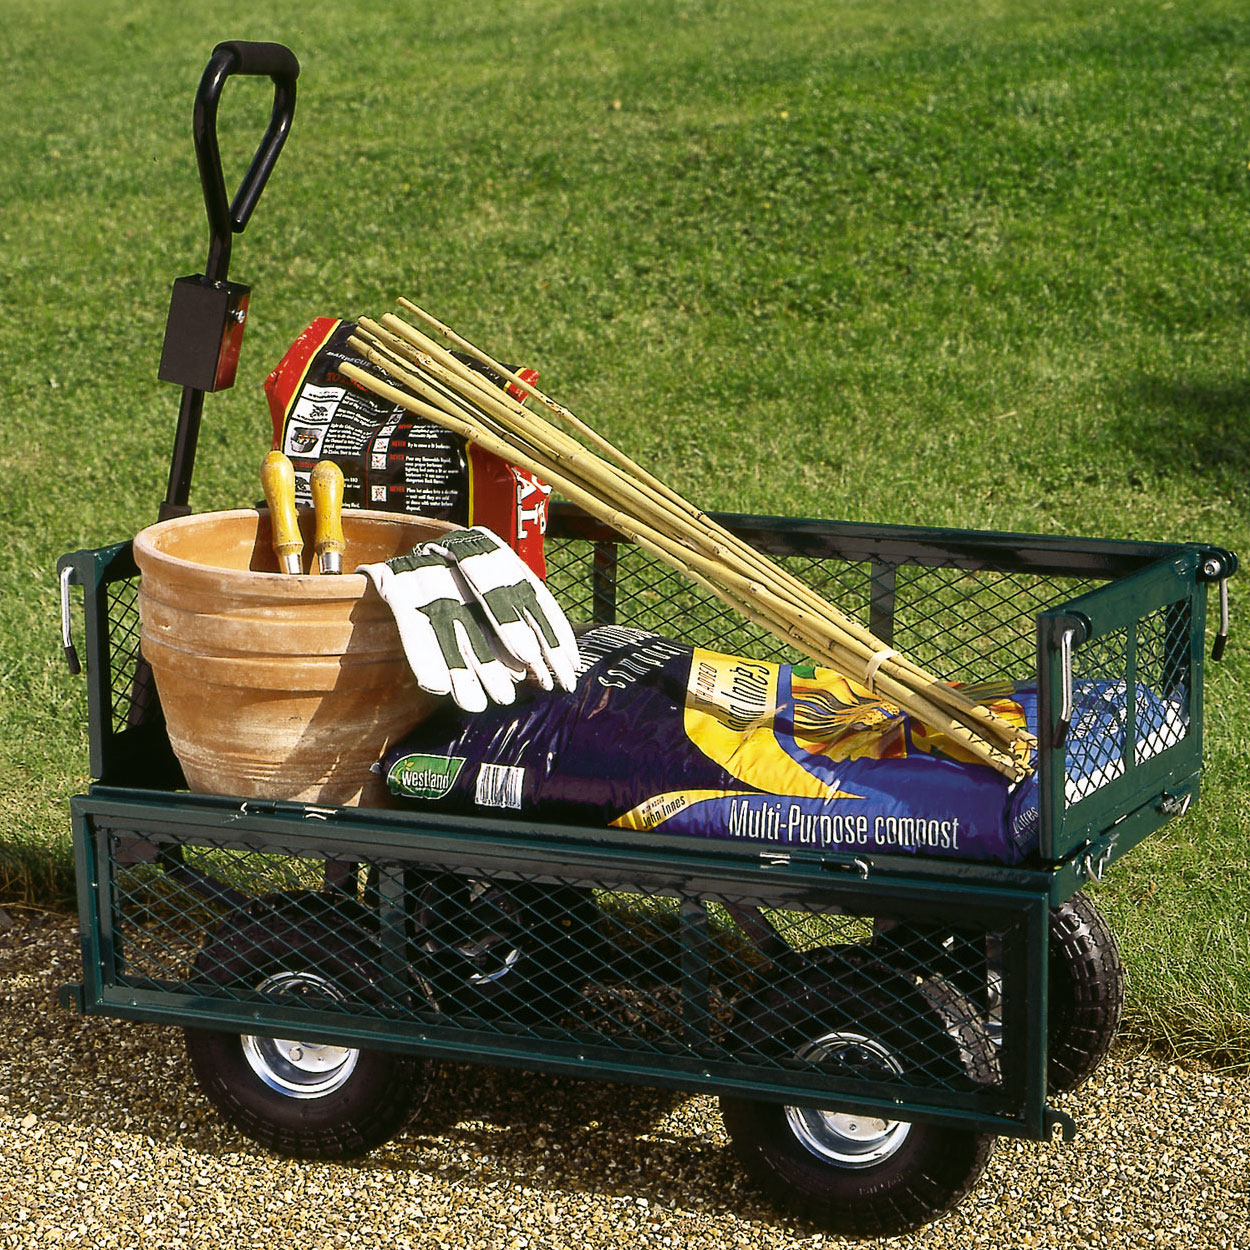 Coopers of Stortford Garden Cart from Coopers of Stortford